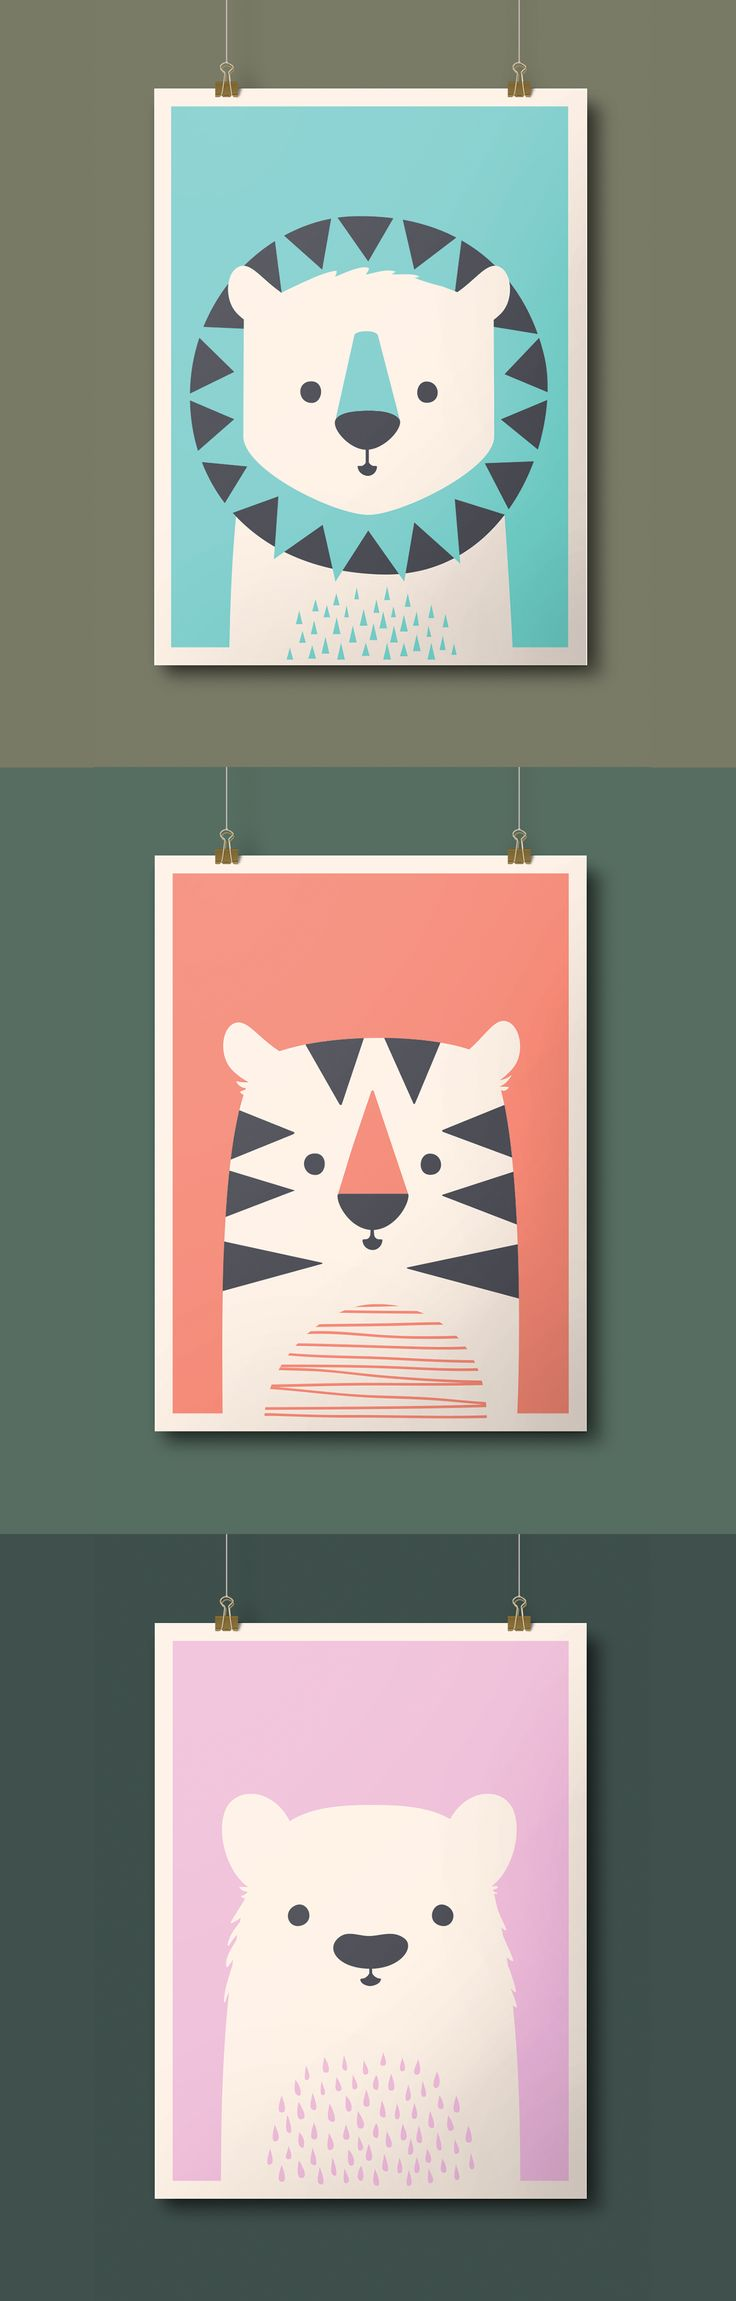 Animal Prints by Imaginary Beast for sale now (!!) Lions & Tigers & Bears, oh my!